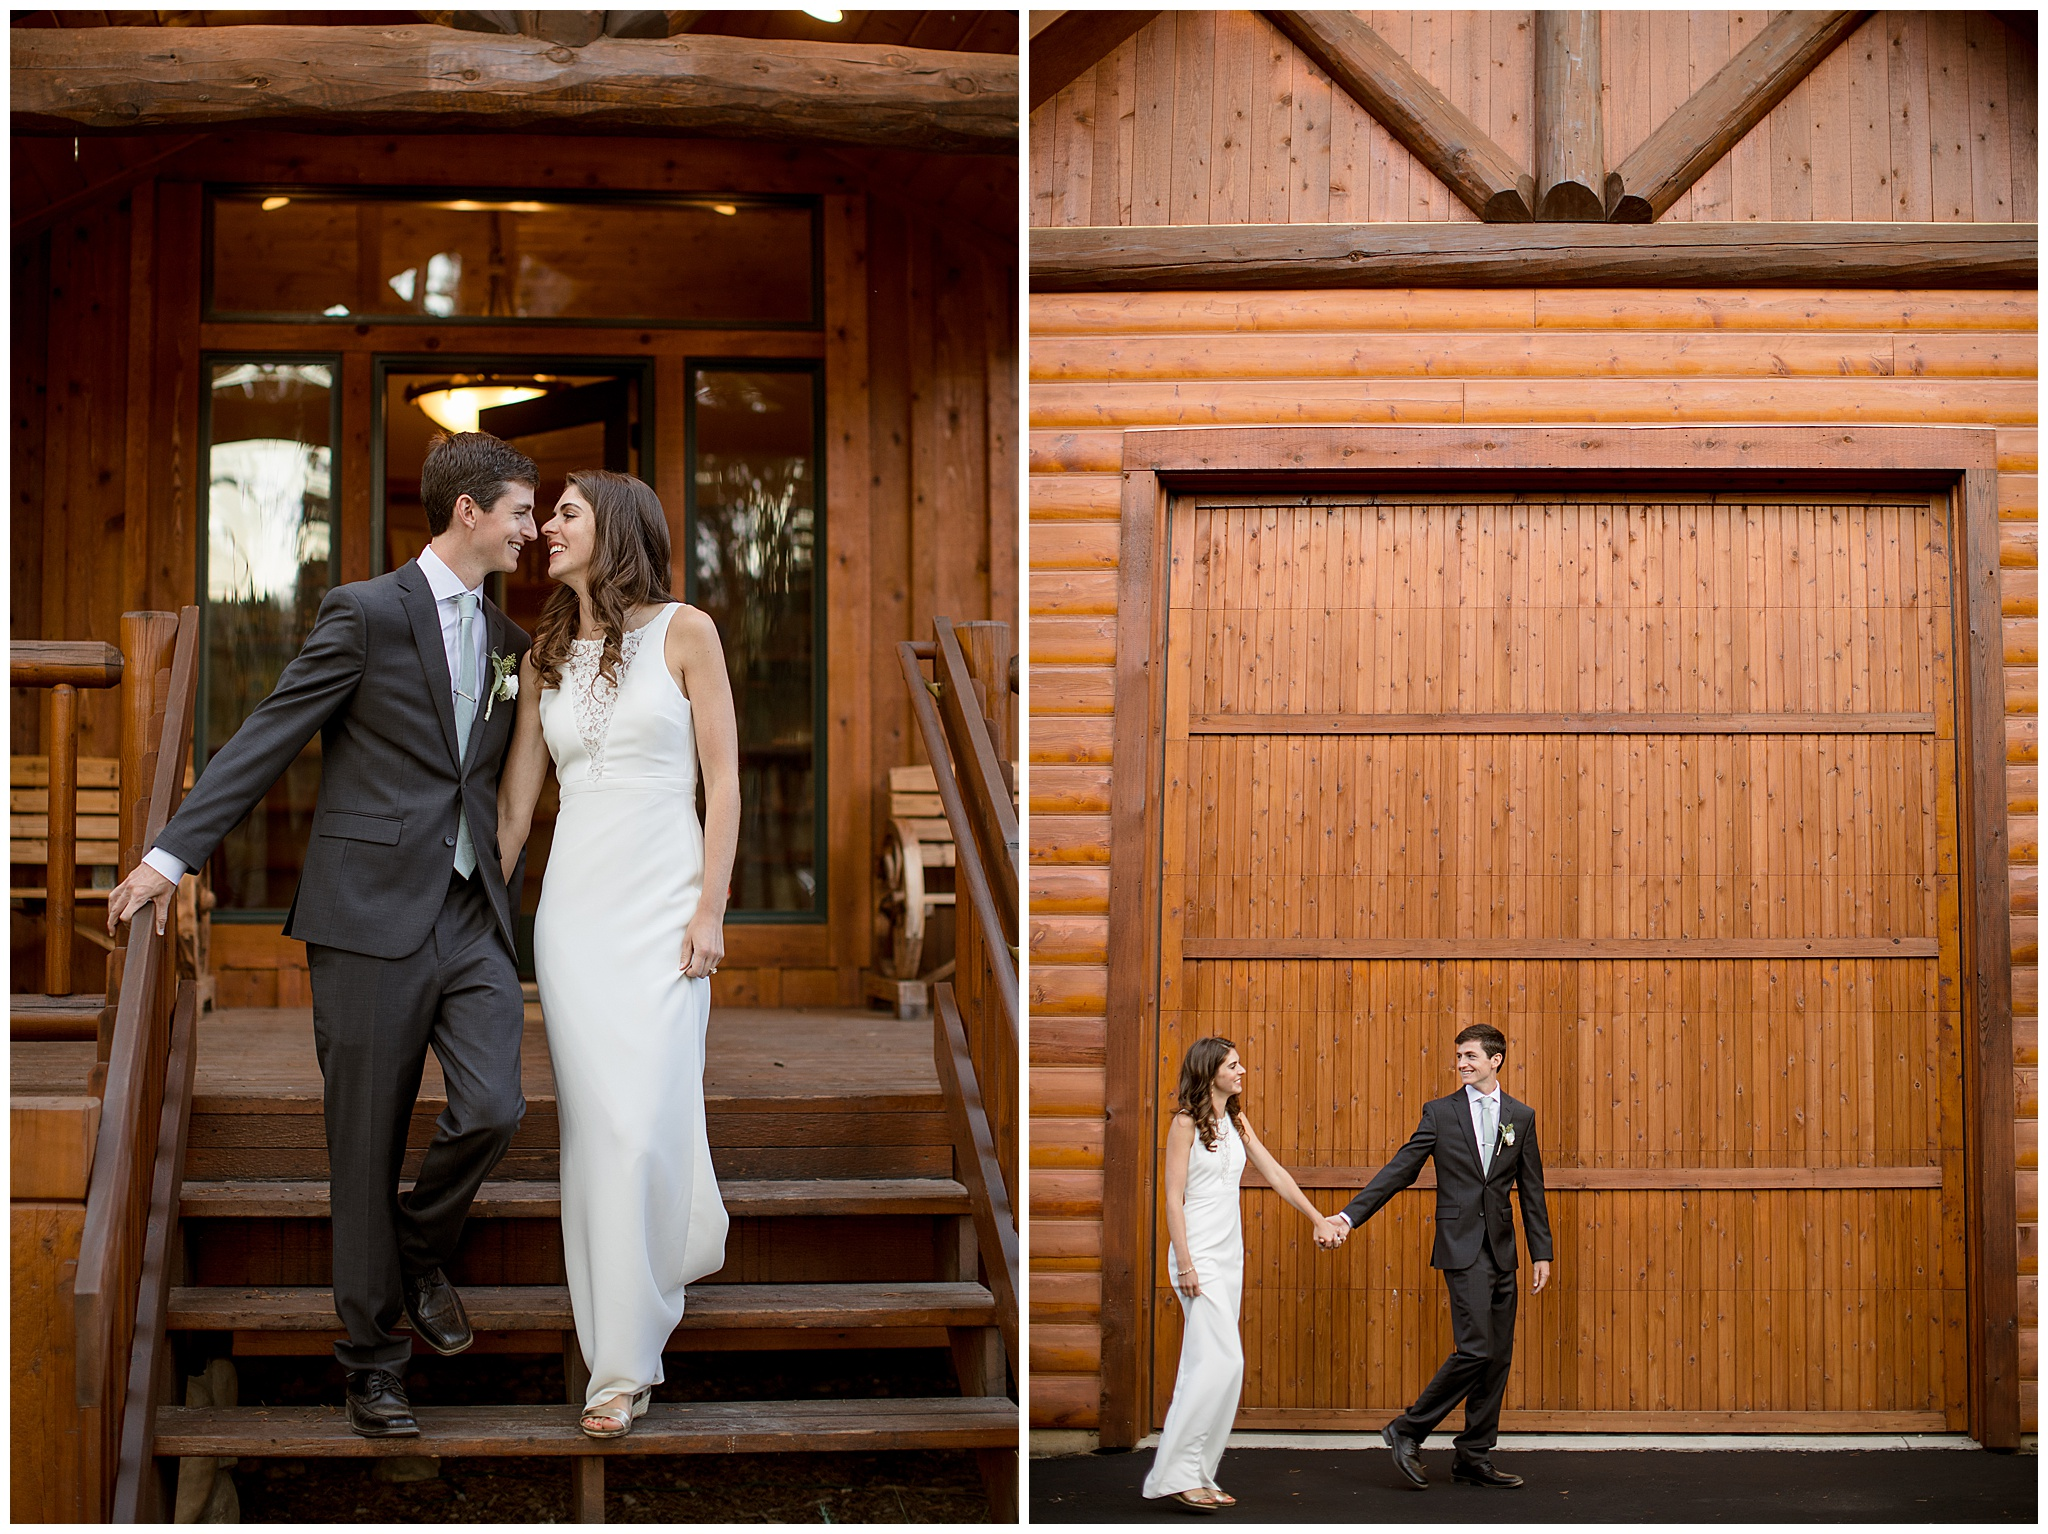 This was their gorgeous cabin in Breckenridge Colorado where they had their micro small wedding